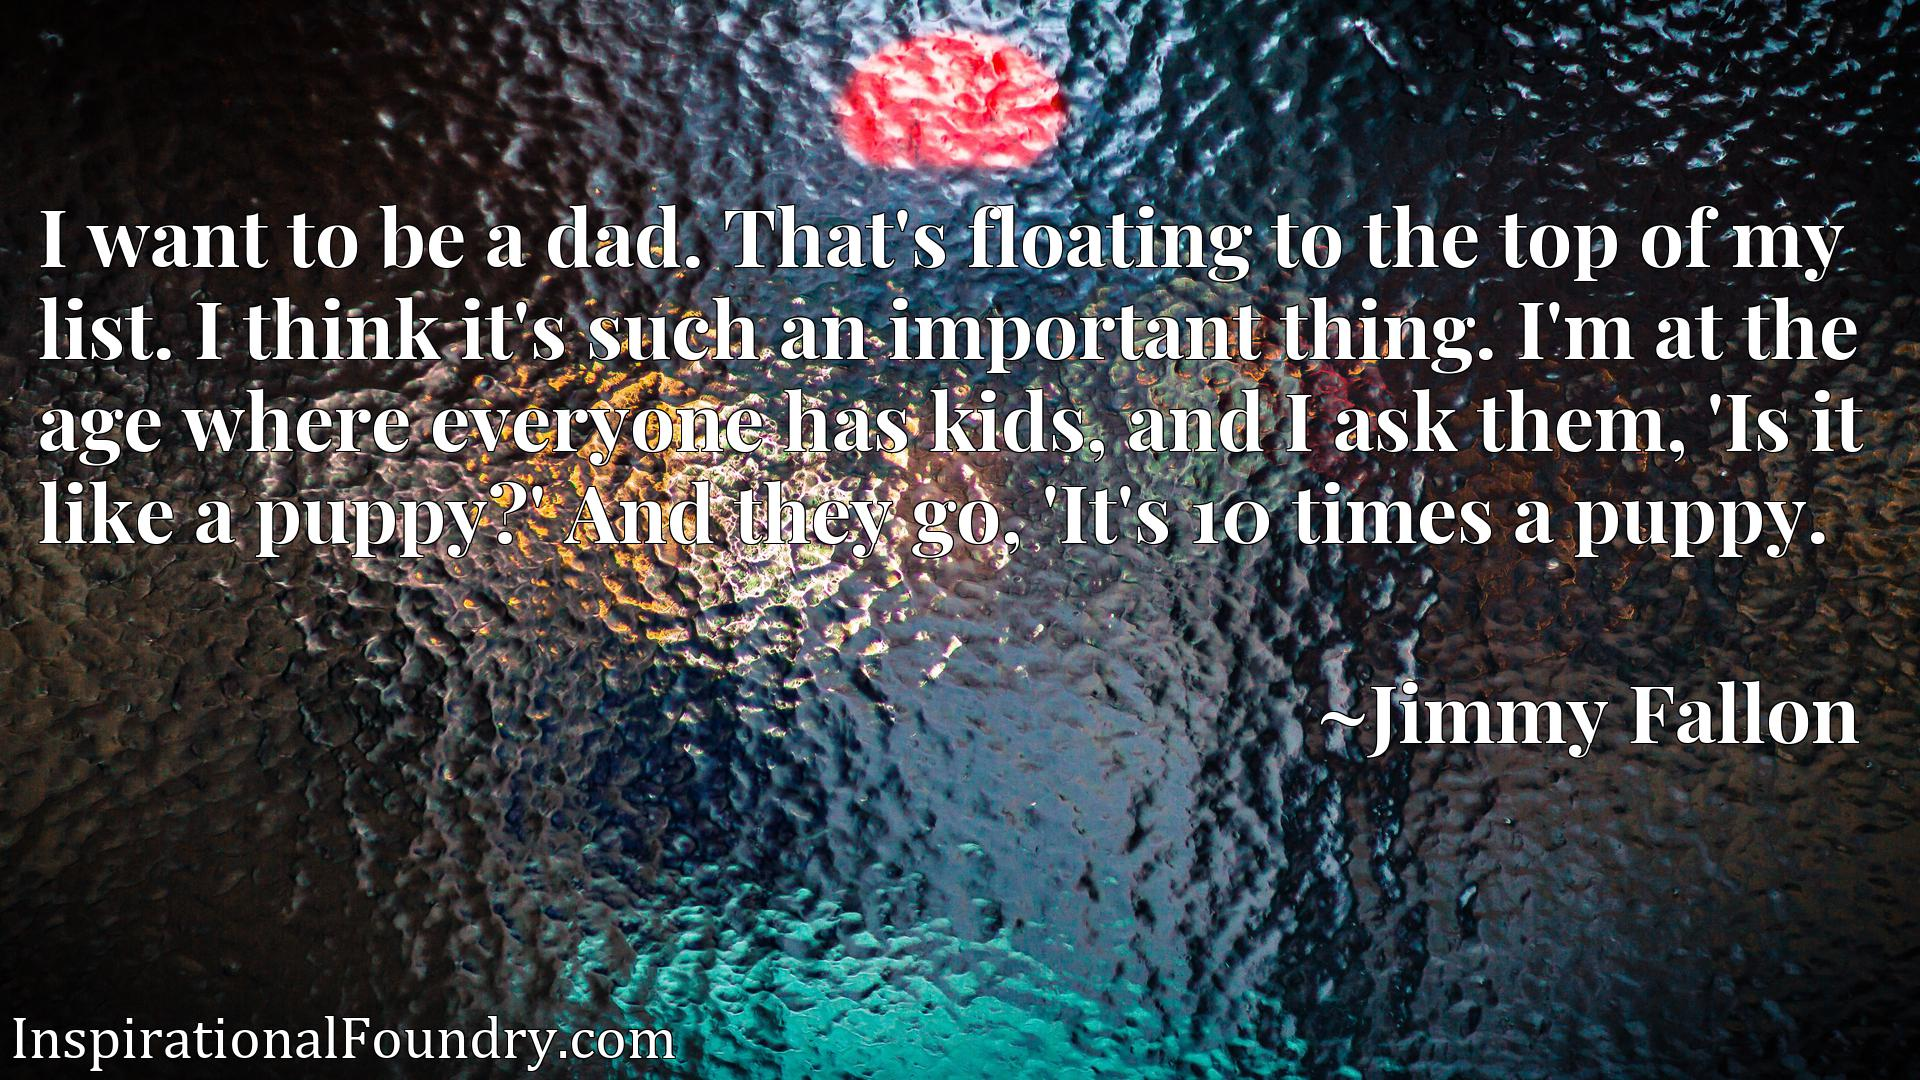 I want to be a dad. That's floating to the top of my list. I think it's such an important thing. I'm at the age where everyone has kids, and I ask them, 'Is it like a puppy?' And they go, 'It's 10 times a puppy.